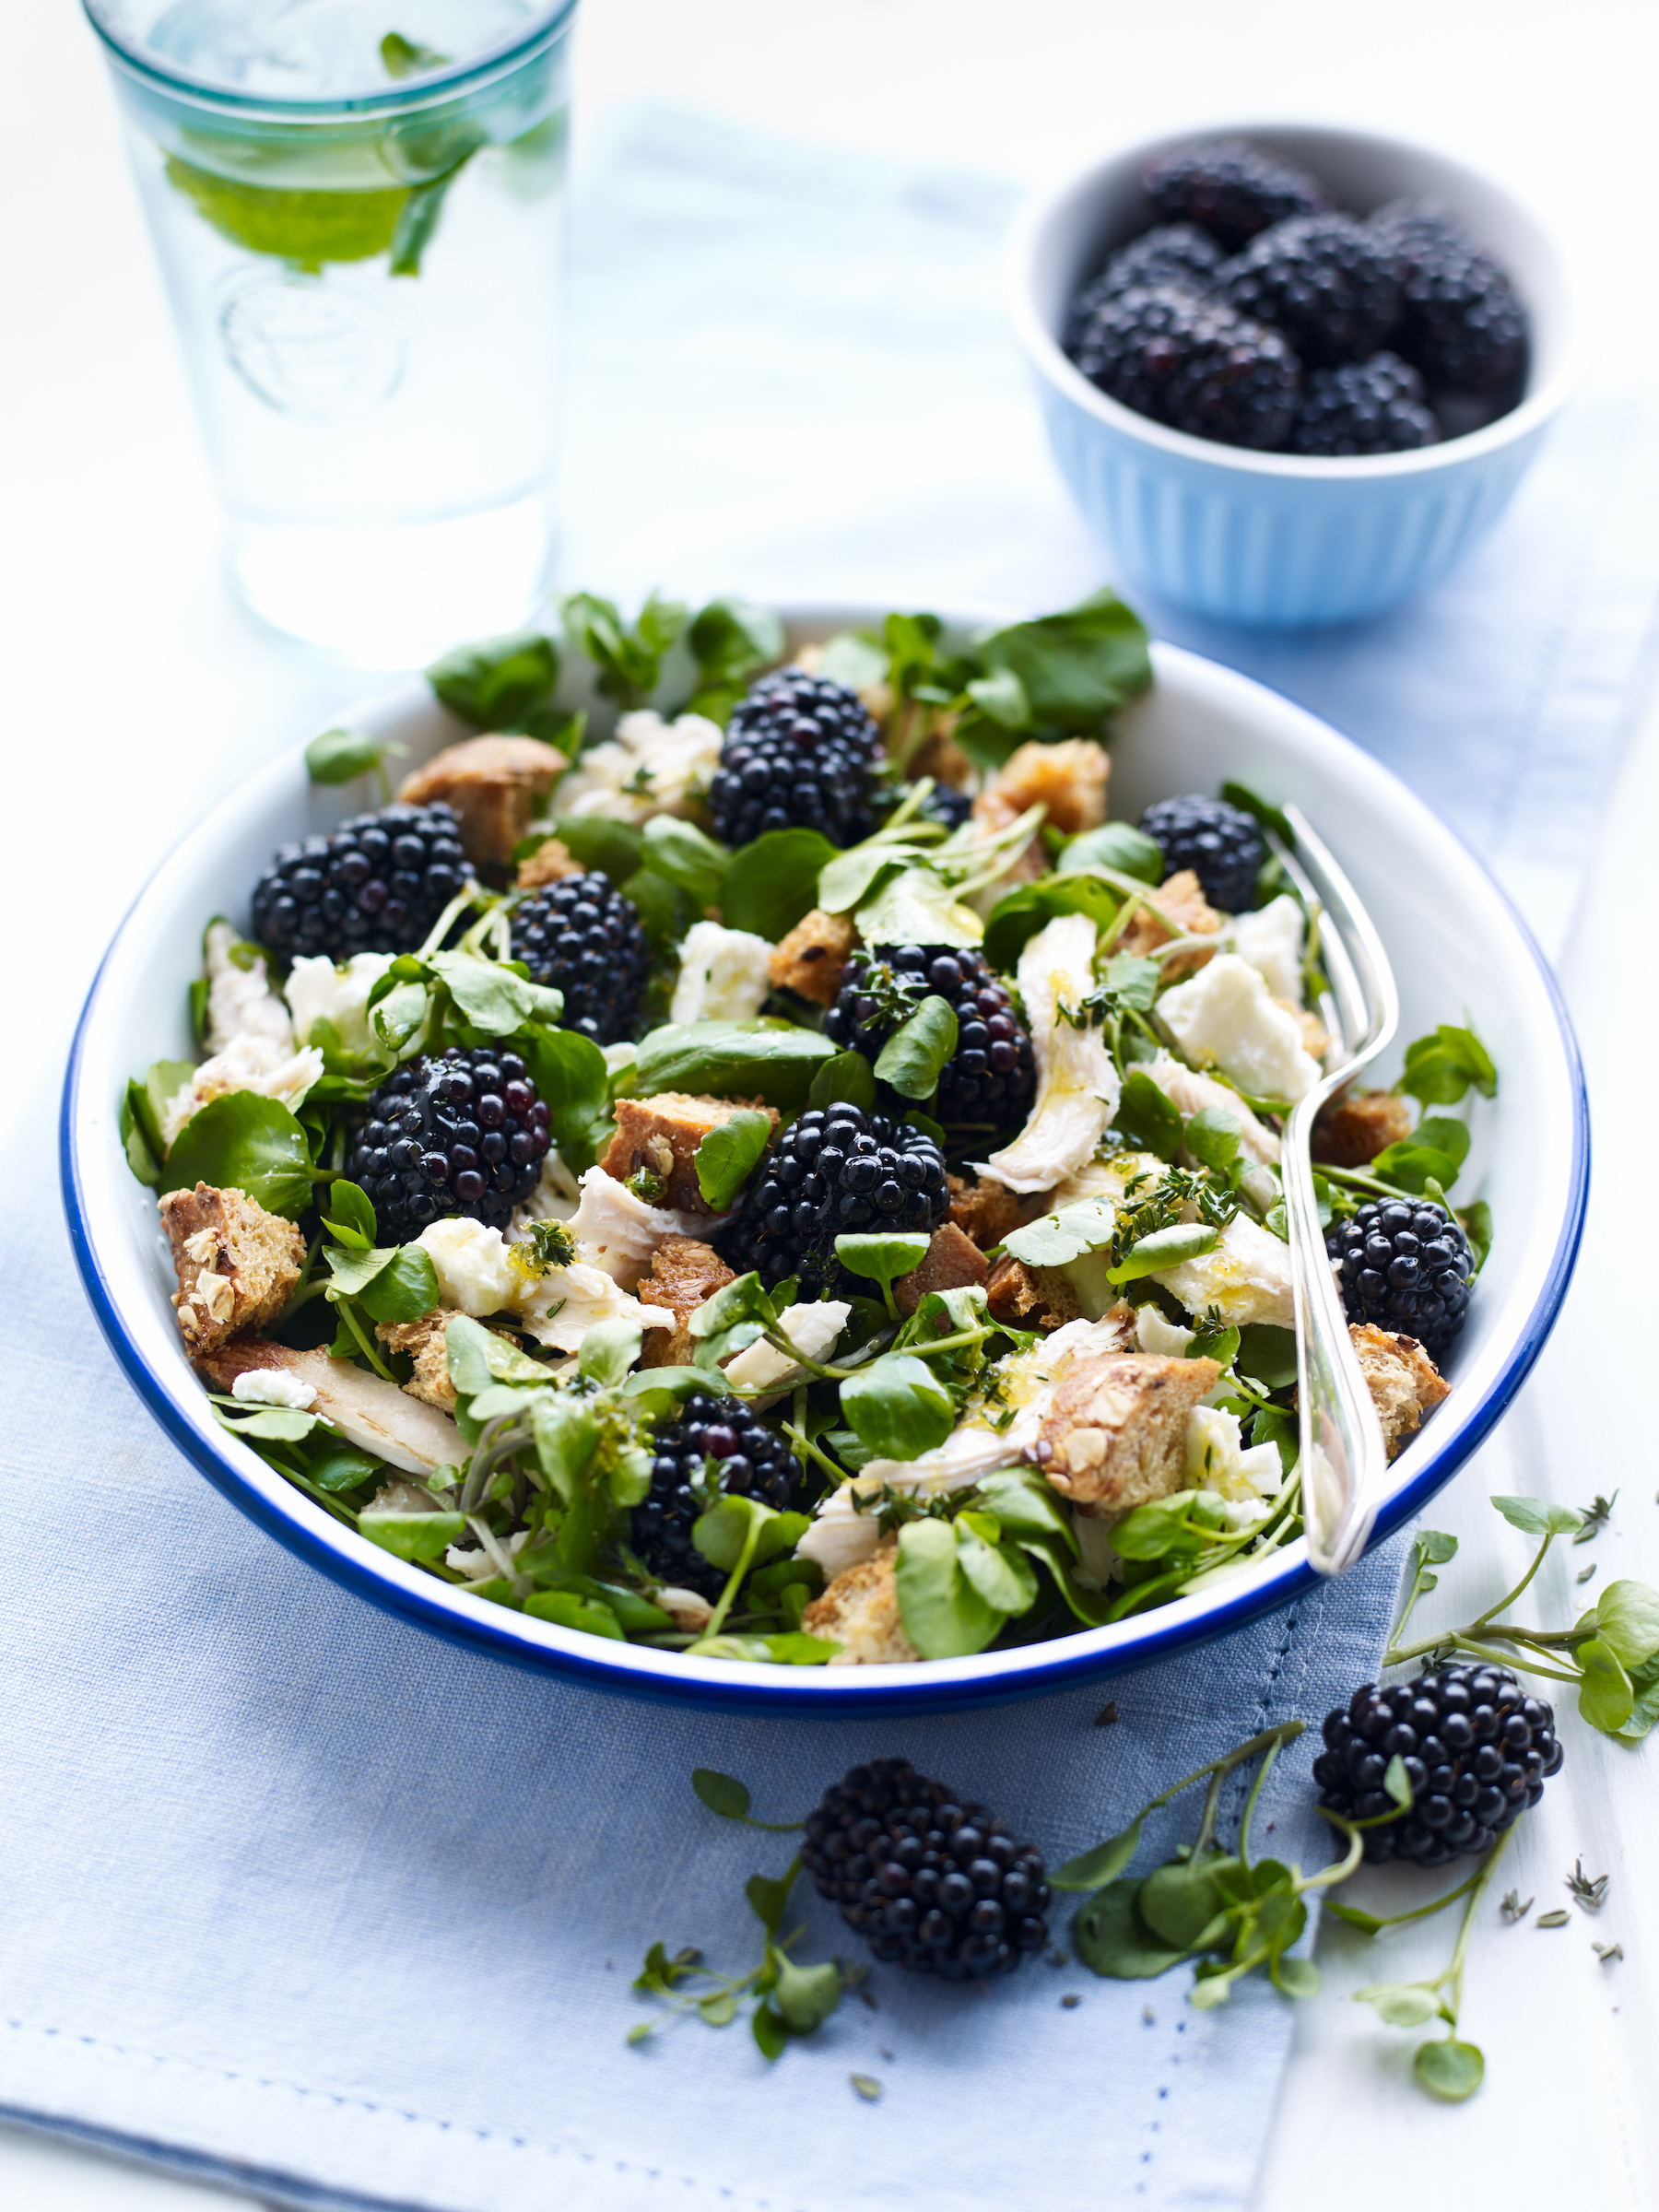 Berry World Chicken and Blackberry Salad 75isq2au2